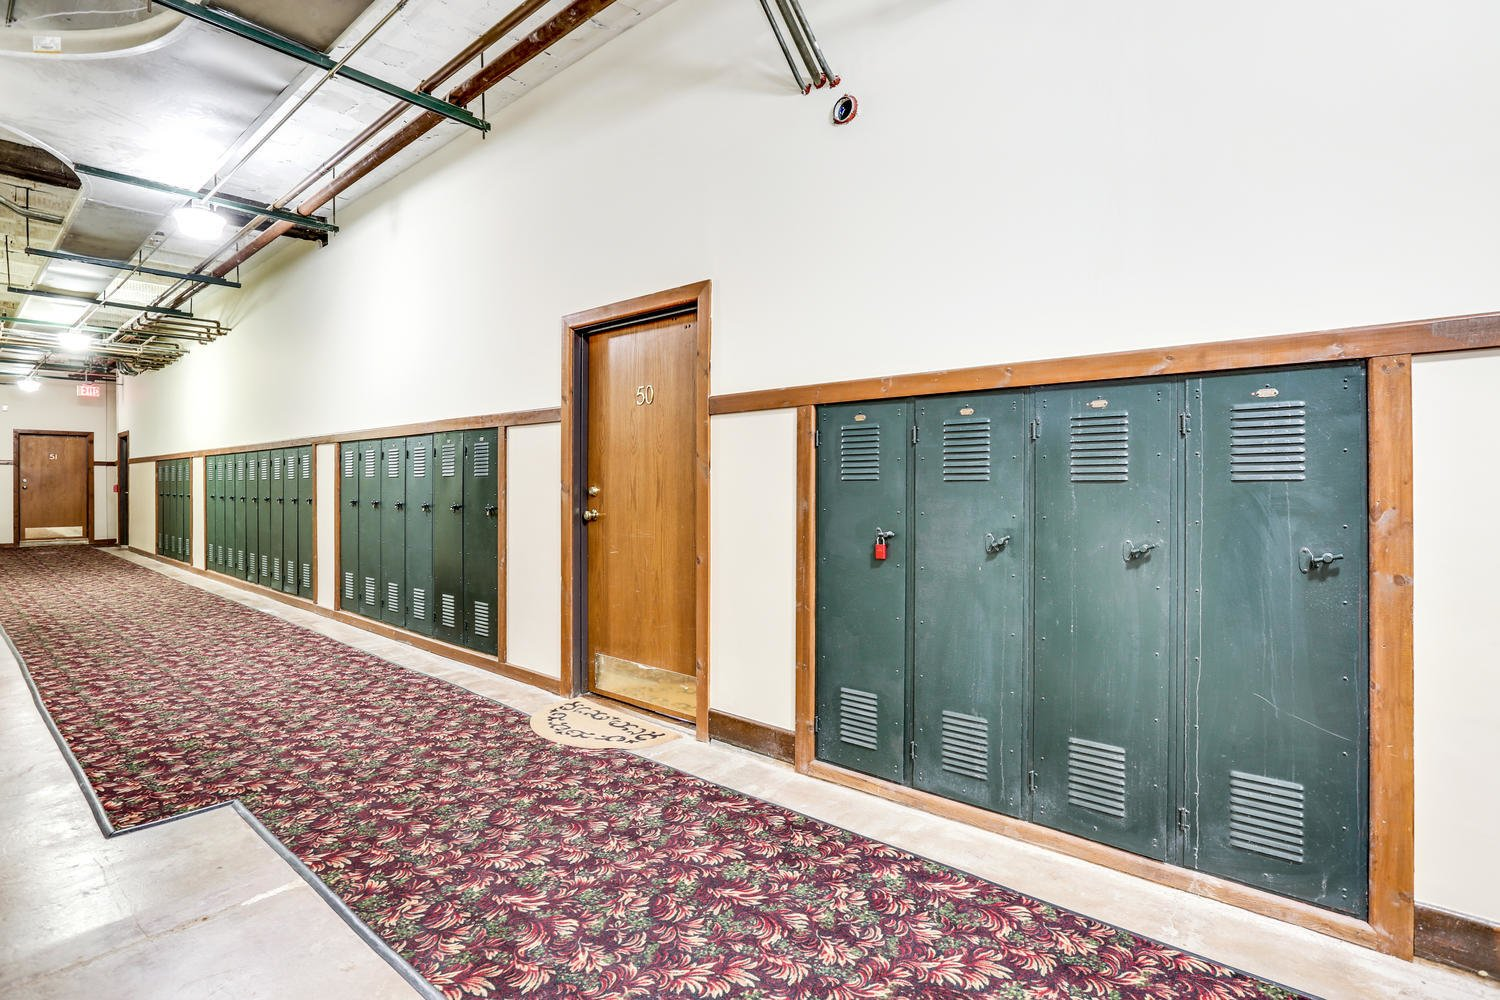 Hallway and Carpet Floor Lockers remain in the hallways of Leland lofts, adding to the character of the turn-of-the-century former schoolhouse.     Photo 9 of 9 in Grab This Dazzling Detroit Loft in a Historic School Building For $450K